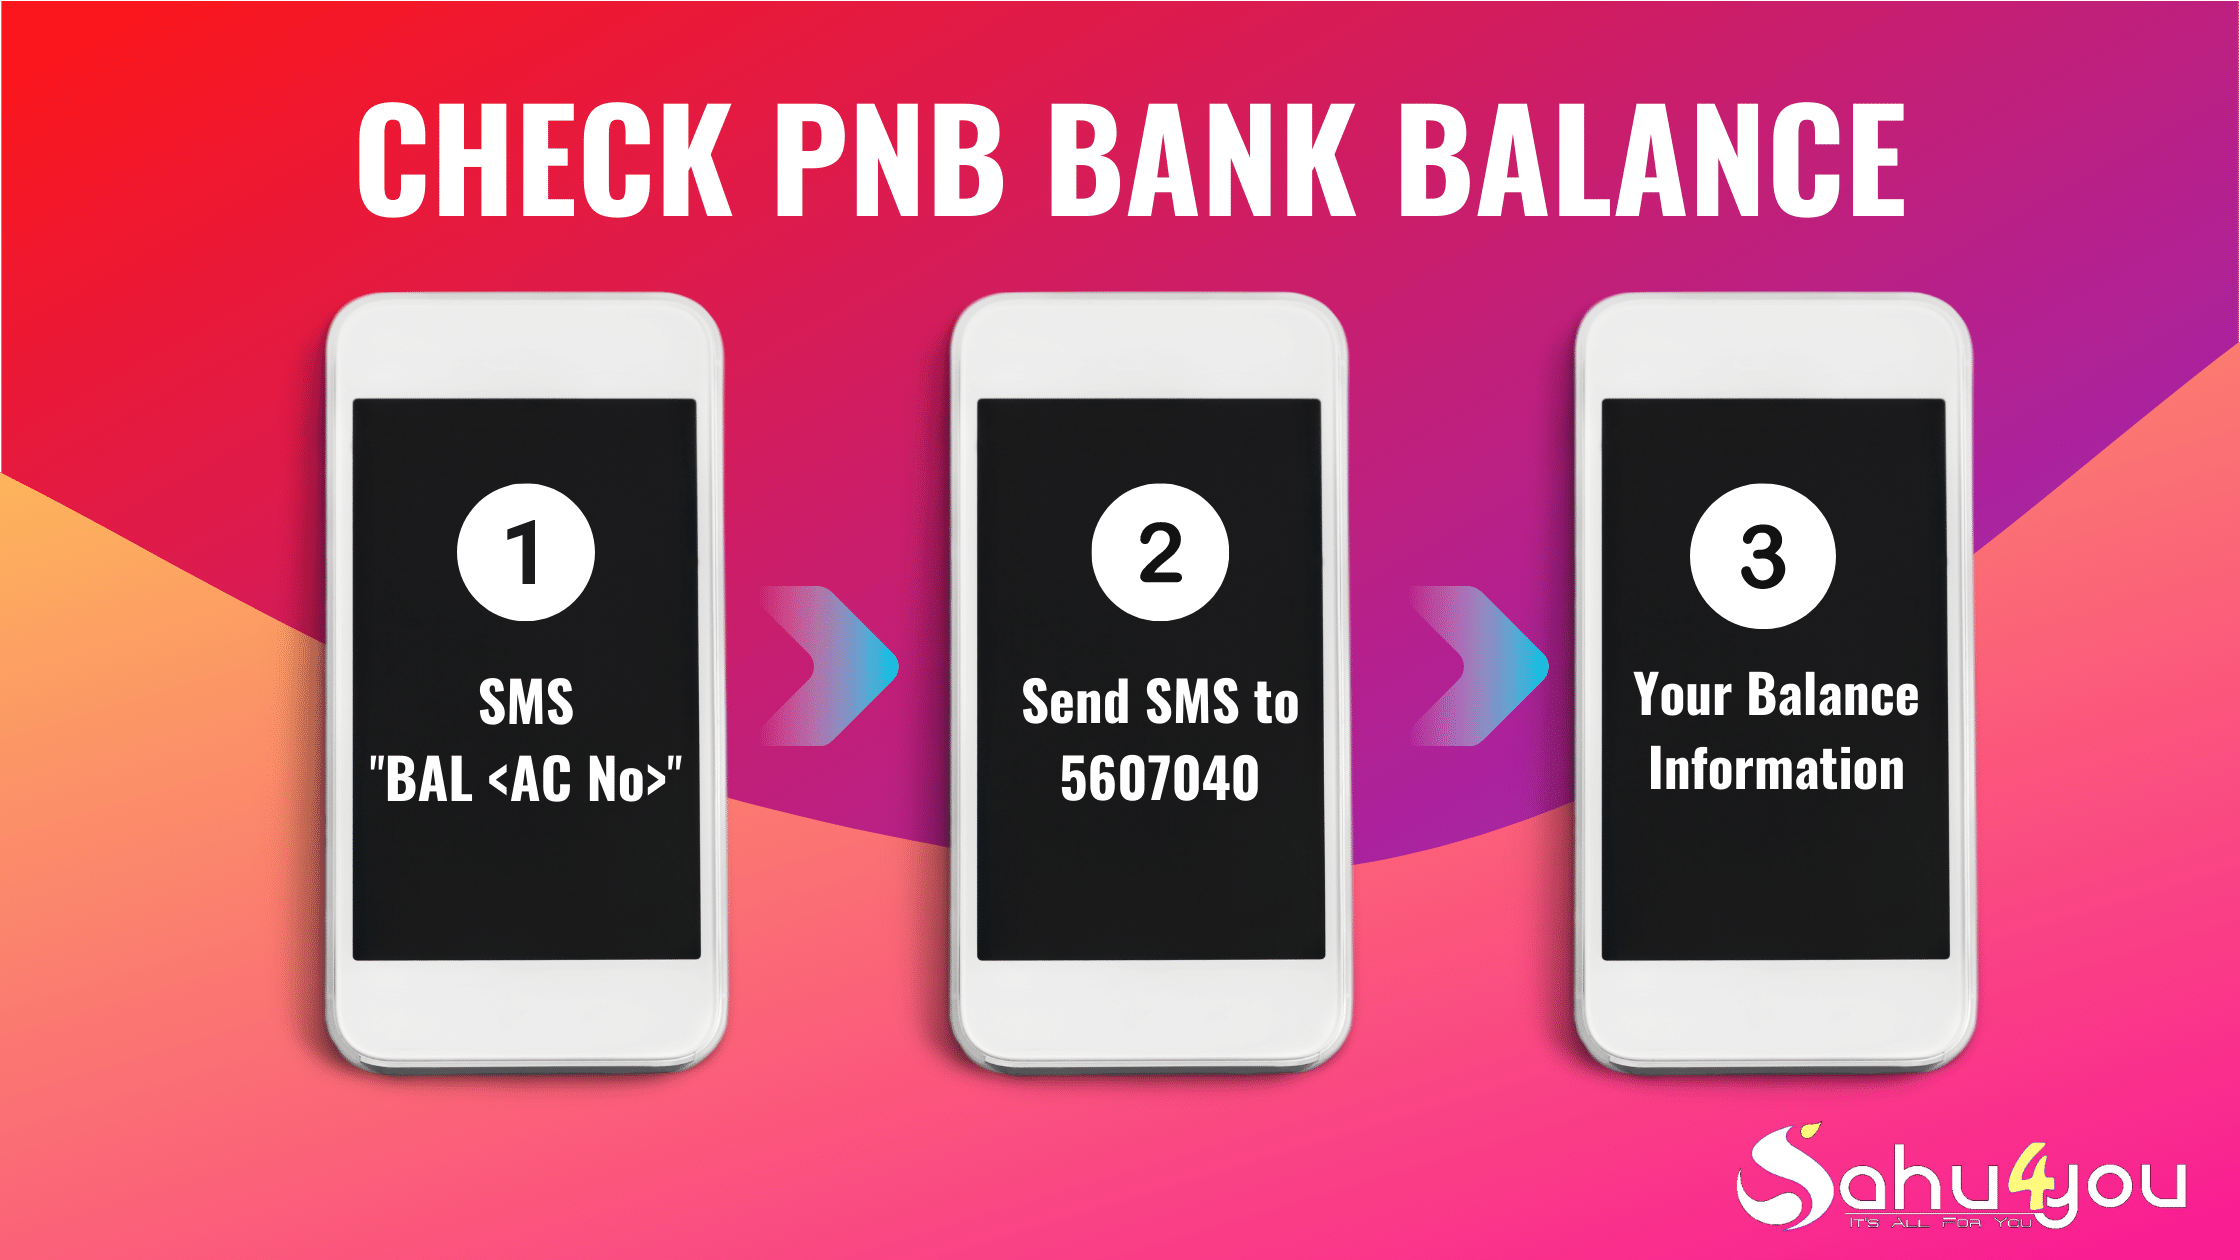 PNB Bank Account Balance Check